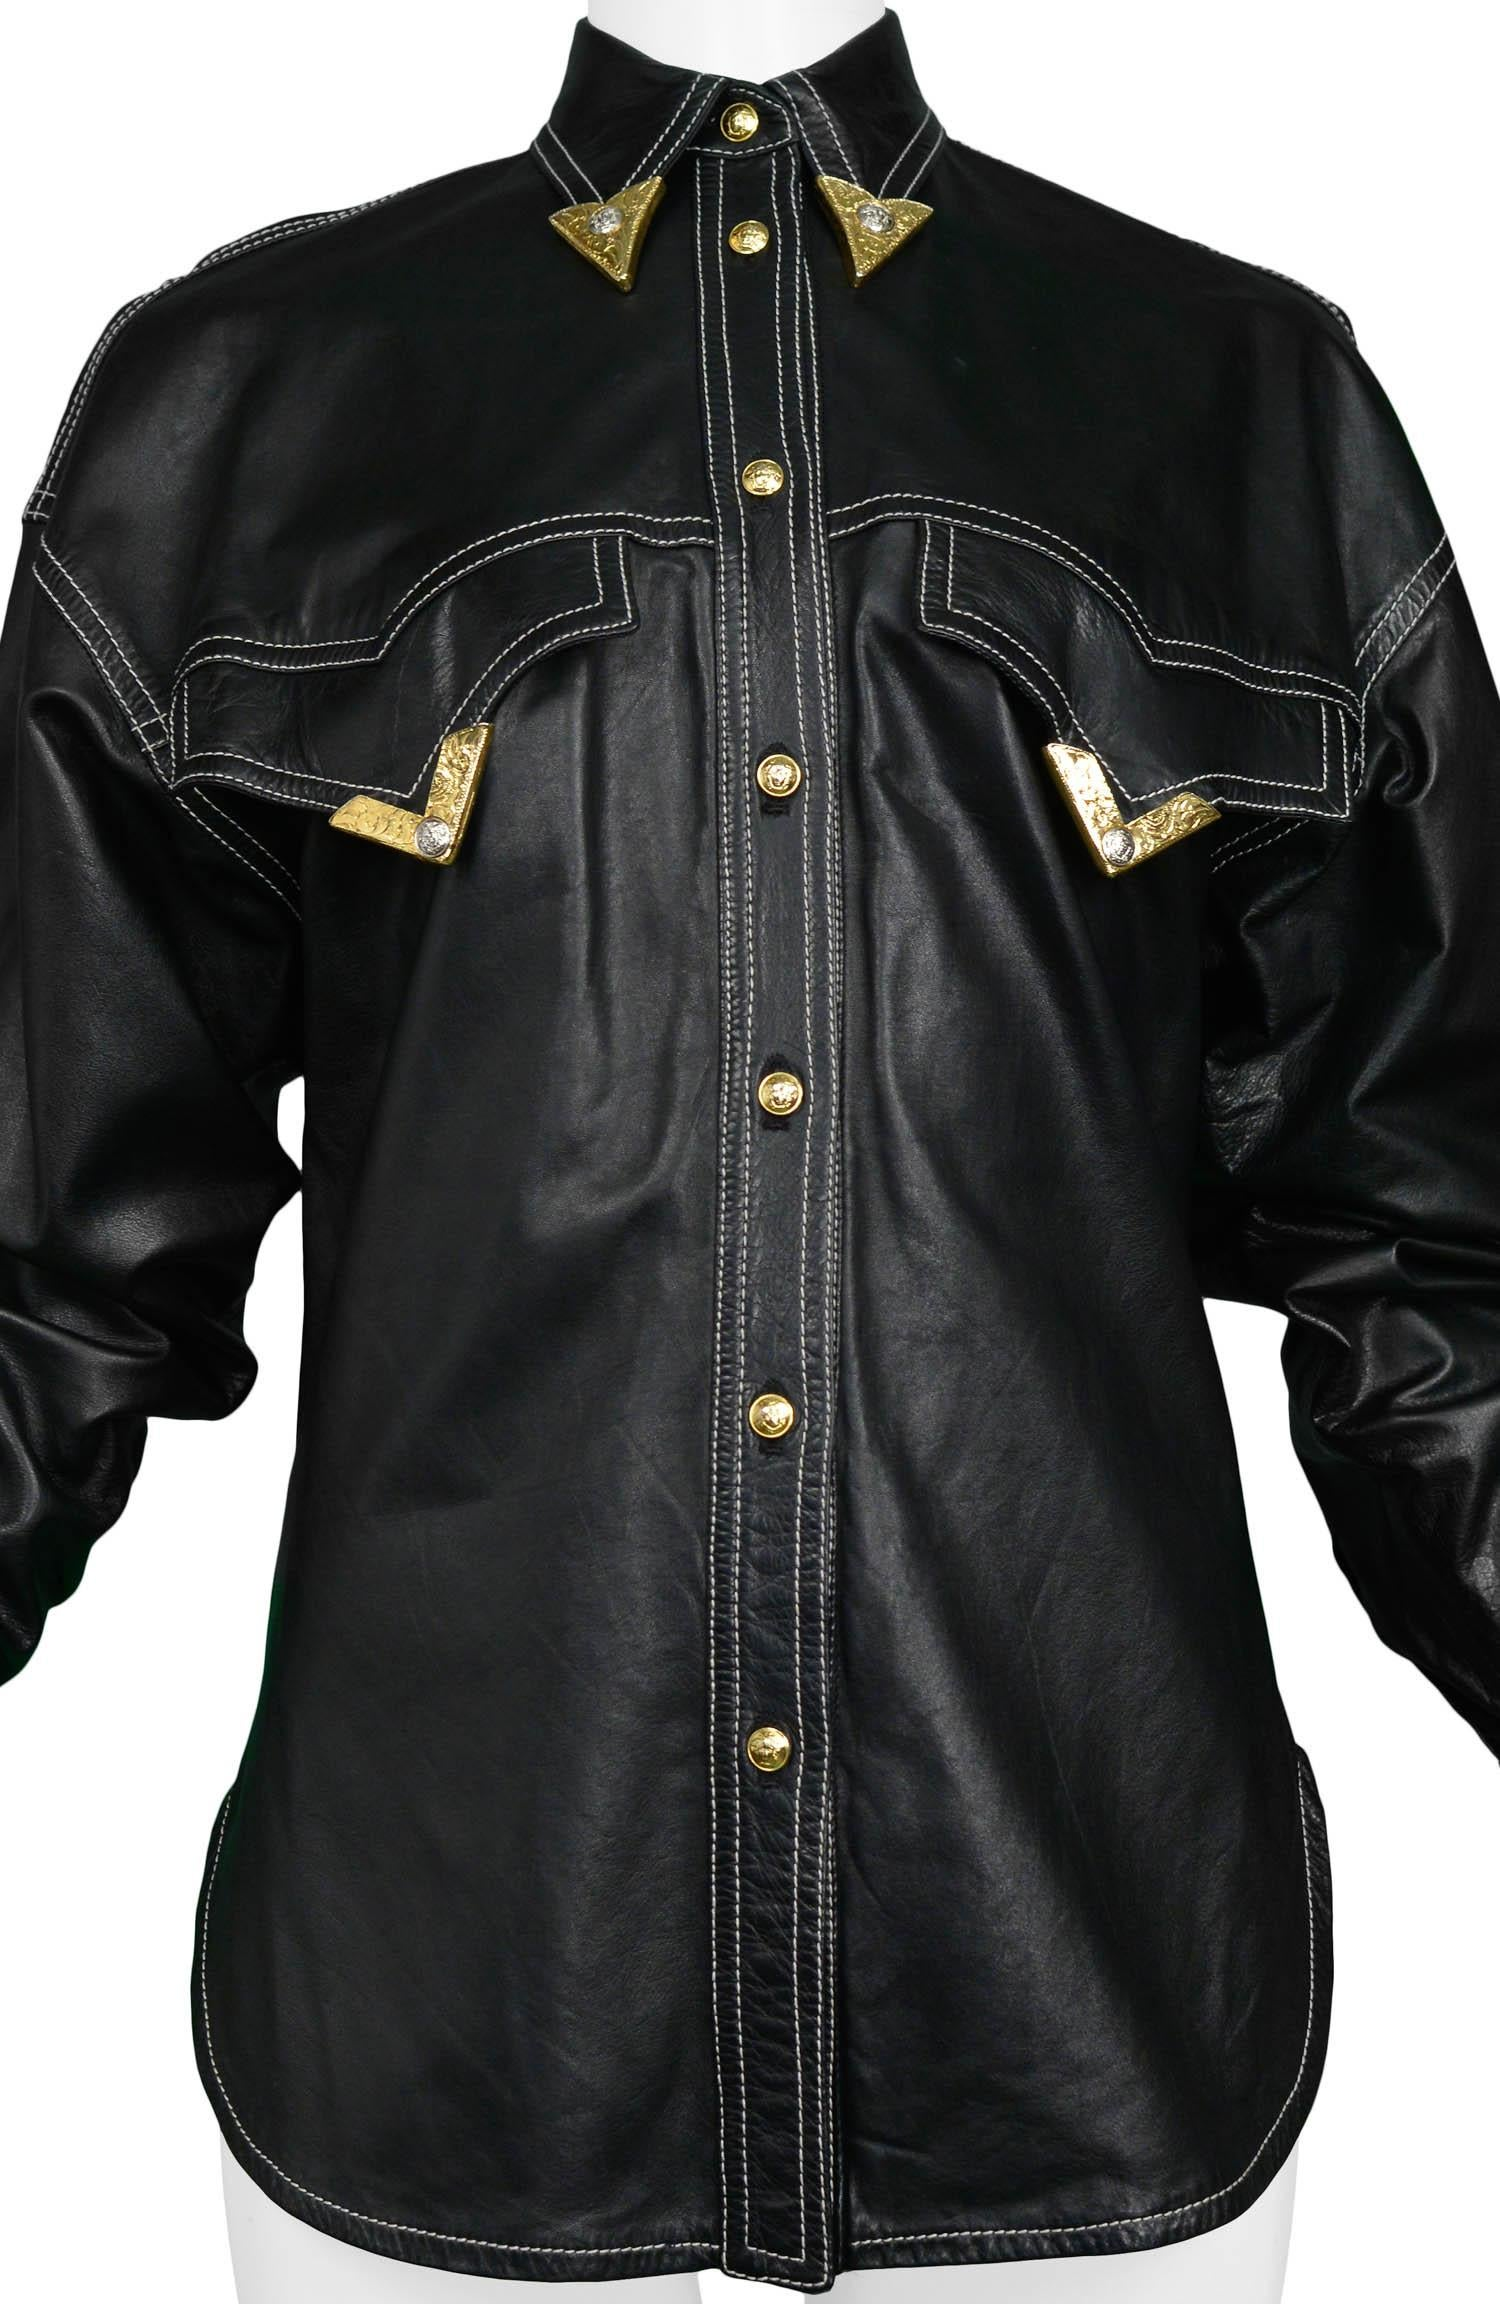 07d6a45b Vintage Gianni Versace F/W 1991 Leather Western Shirt at 1stdibs